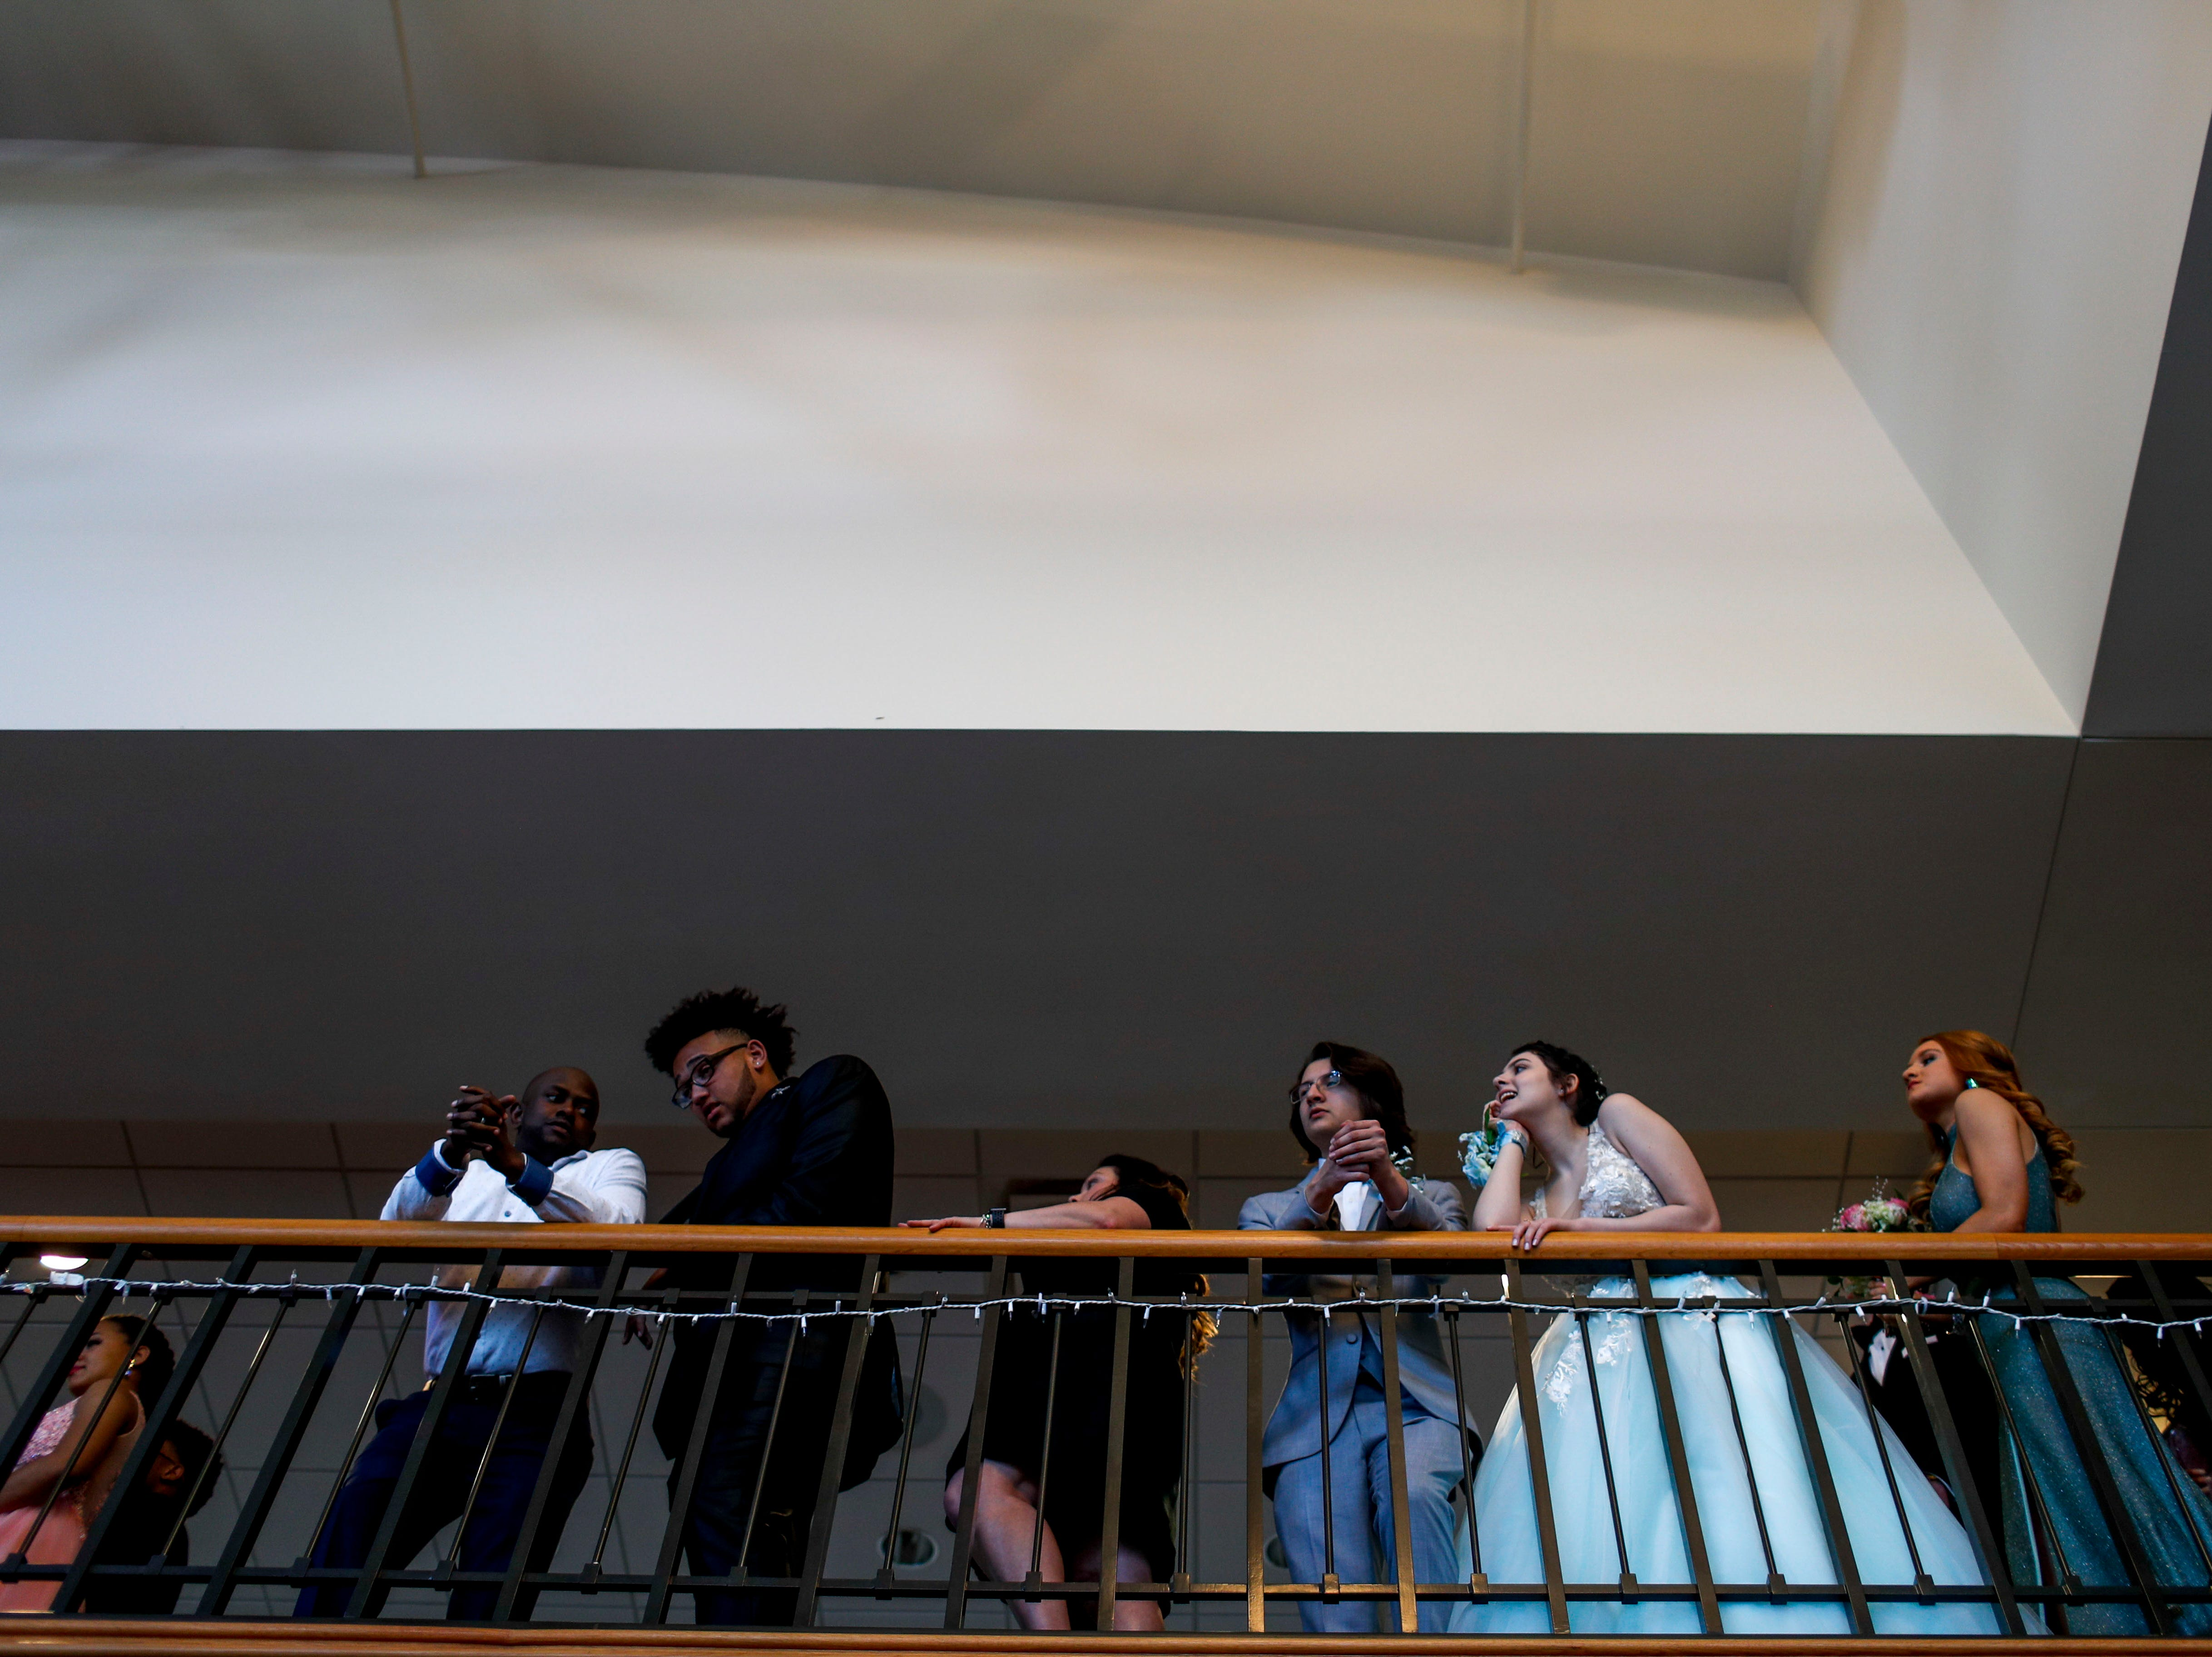 Juniors and seniors line the balcony of the second floor before taking a walk down a flight of stairs before friends and relatives during Clarksville Academy's 2019 prom at The Bruce Convention Center in Hopkinsville, Ky., on Saturday, April 6, 2019.